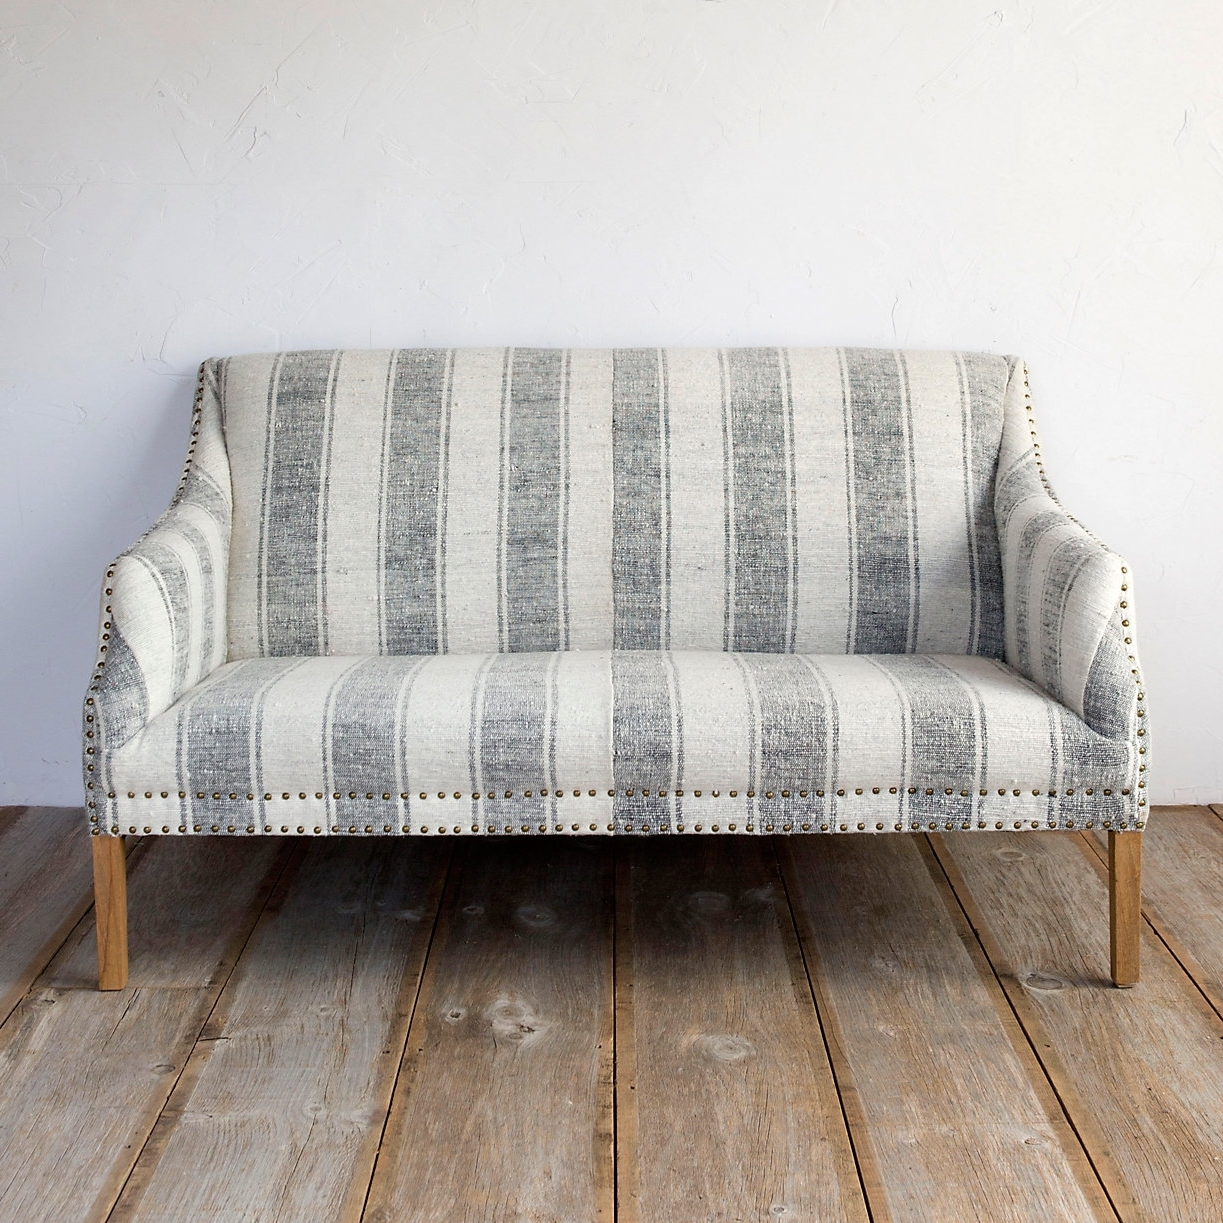 Famous Shabby Chic Decor For Sale Shabby Chic Used Furniture Shabby Chic Throughout Shabby Chic Sofas (View 15 of 15)